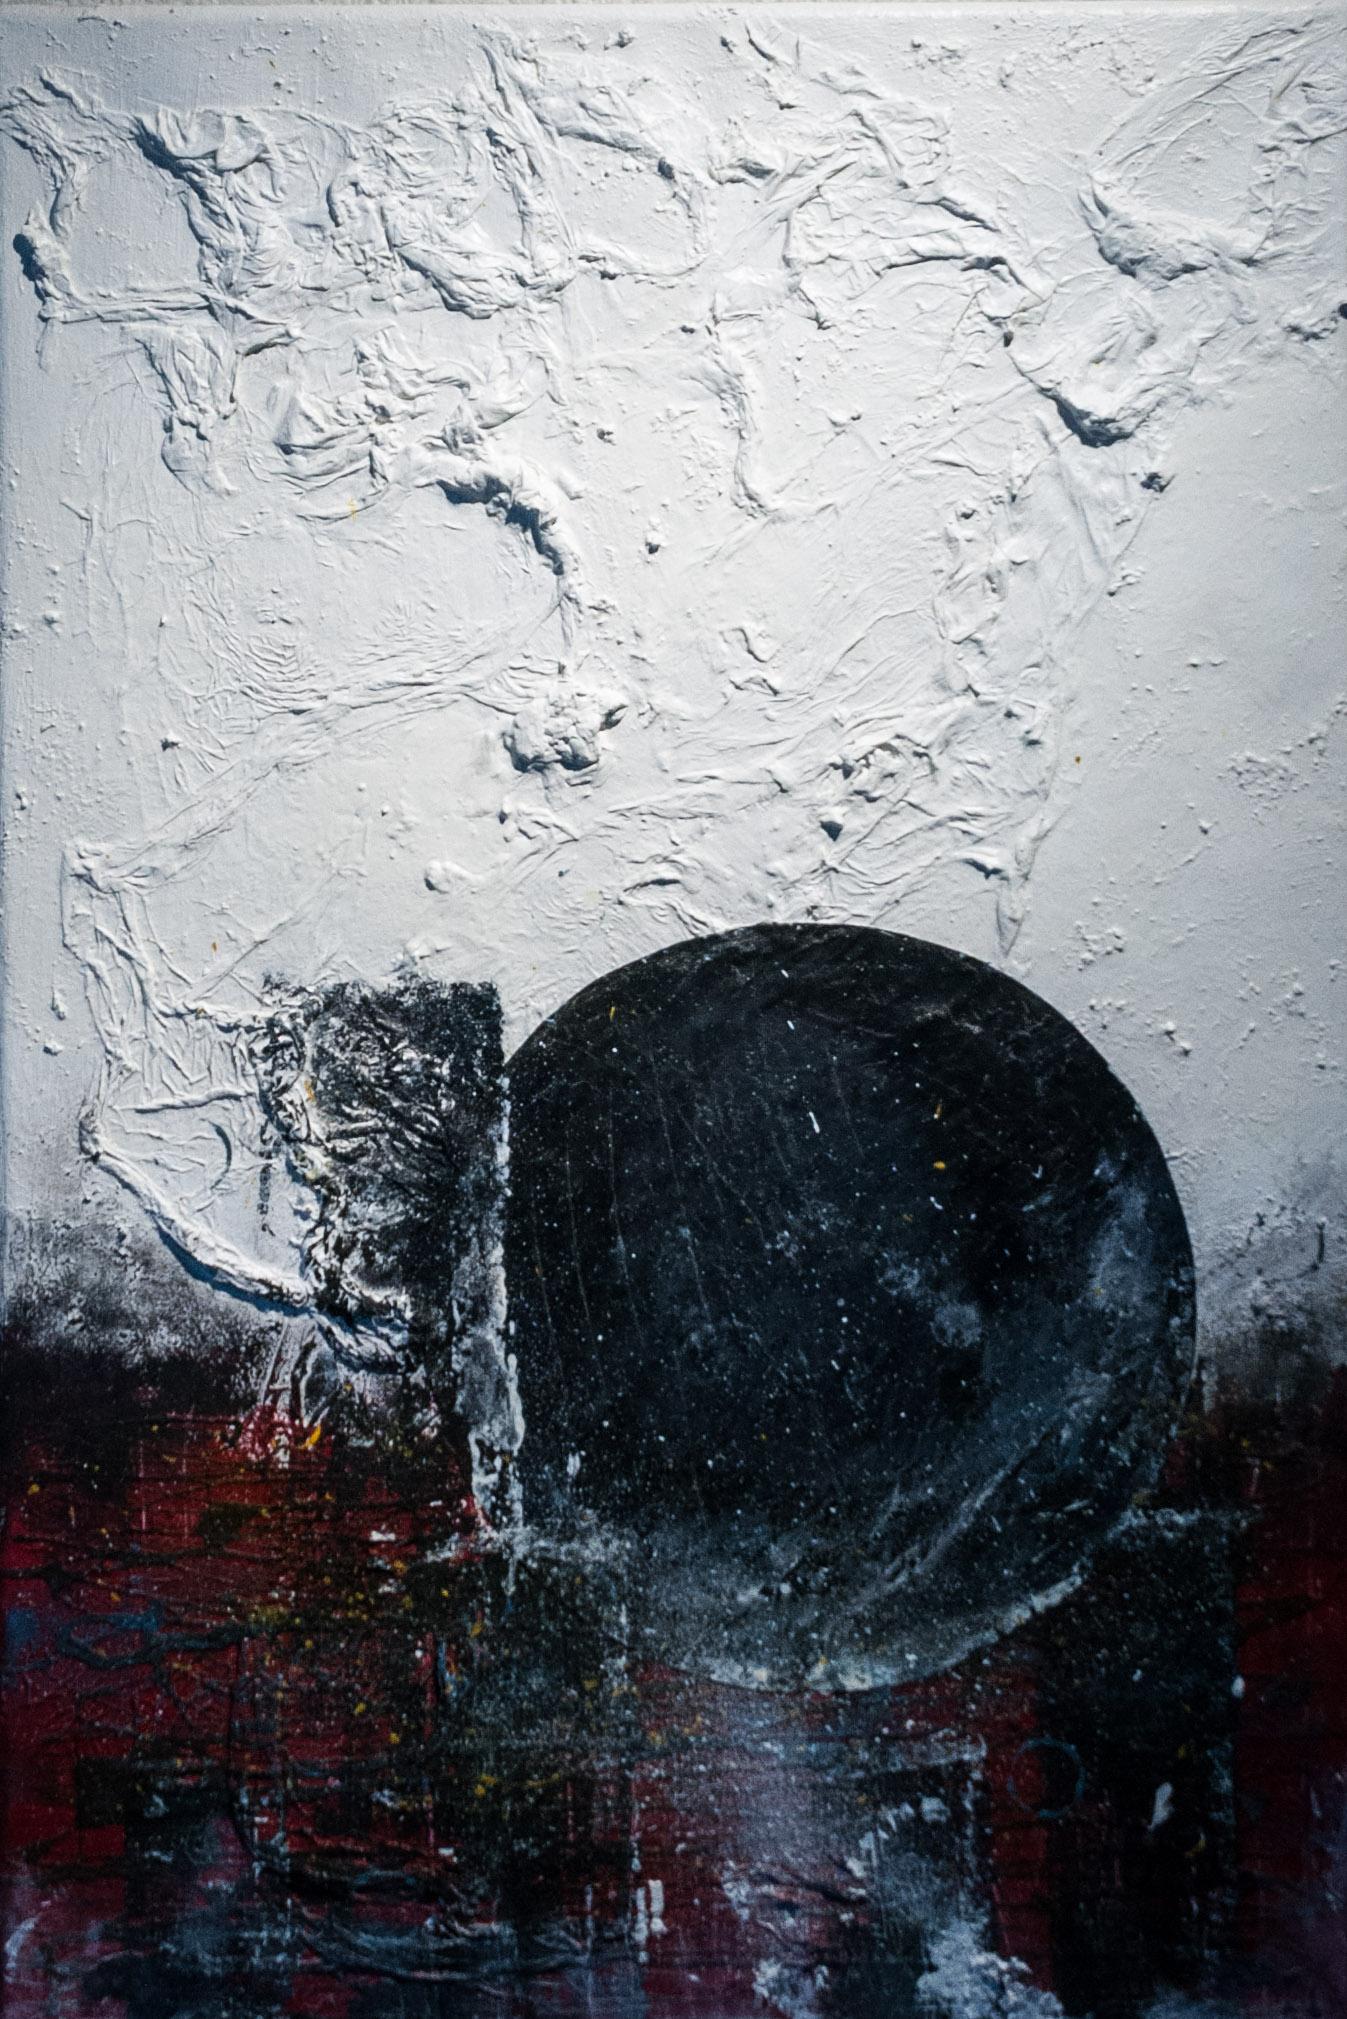 ATRO 33.3 M45 CLV U744 - 62446; Mixed media on canvas; 40 cm x 60 cm;